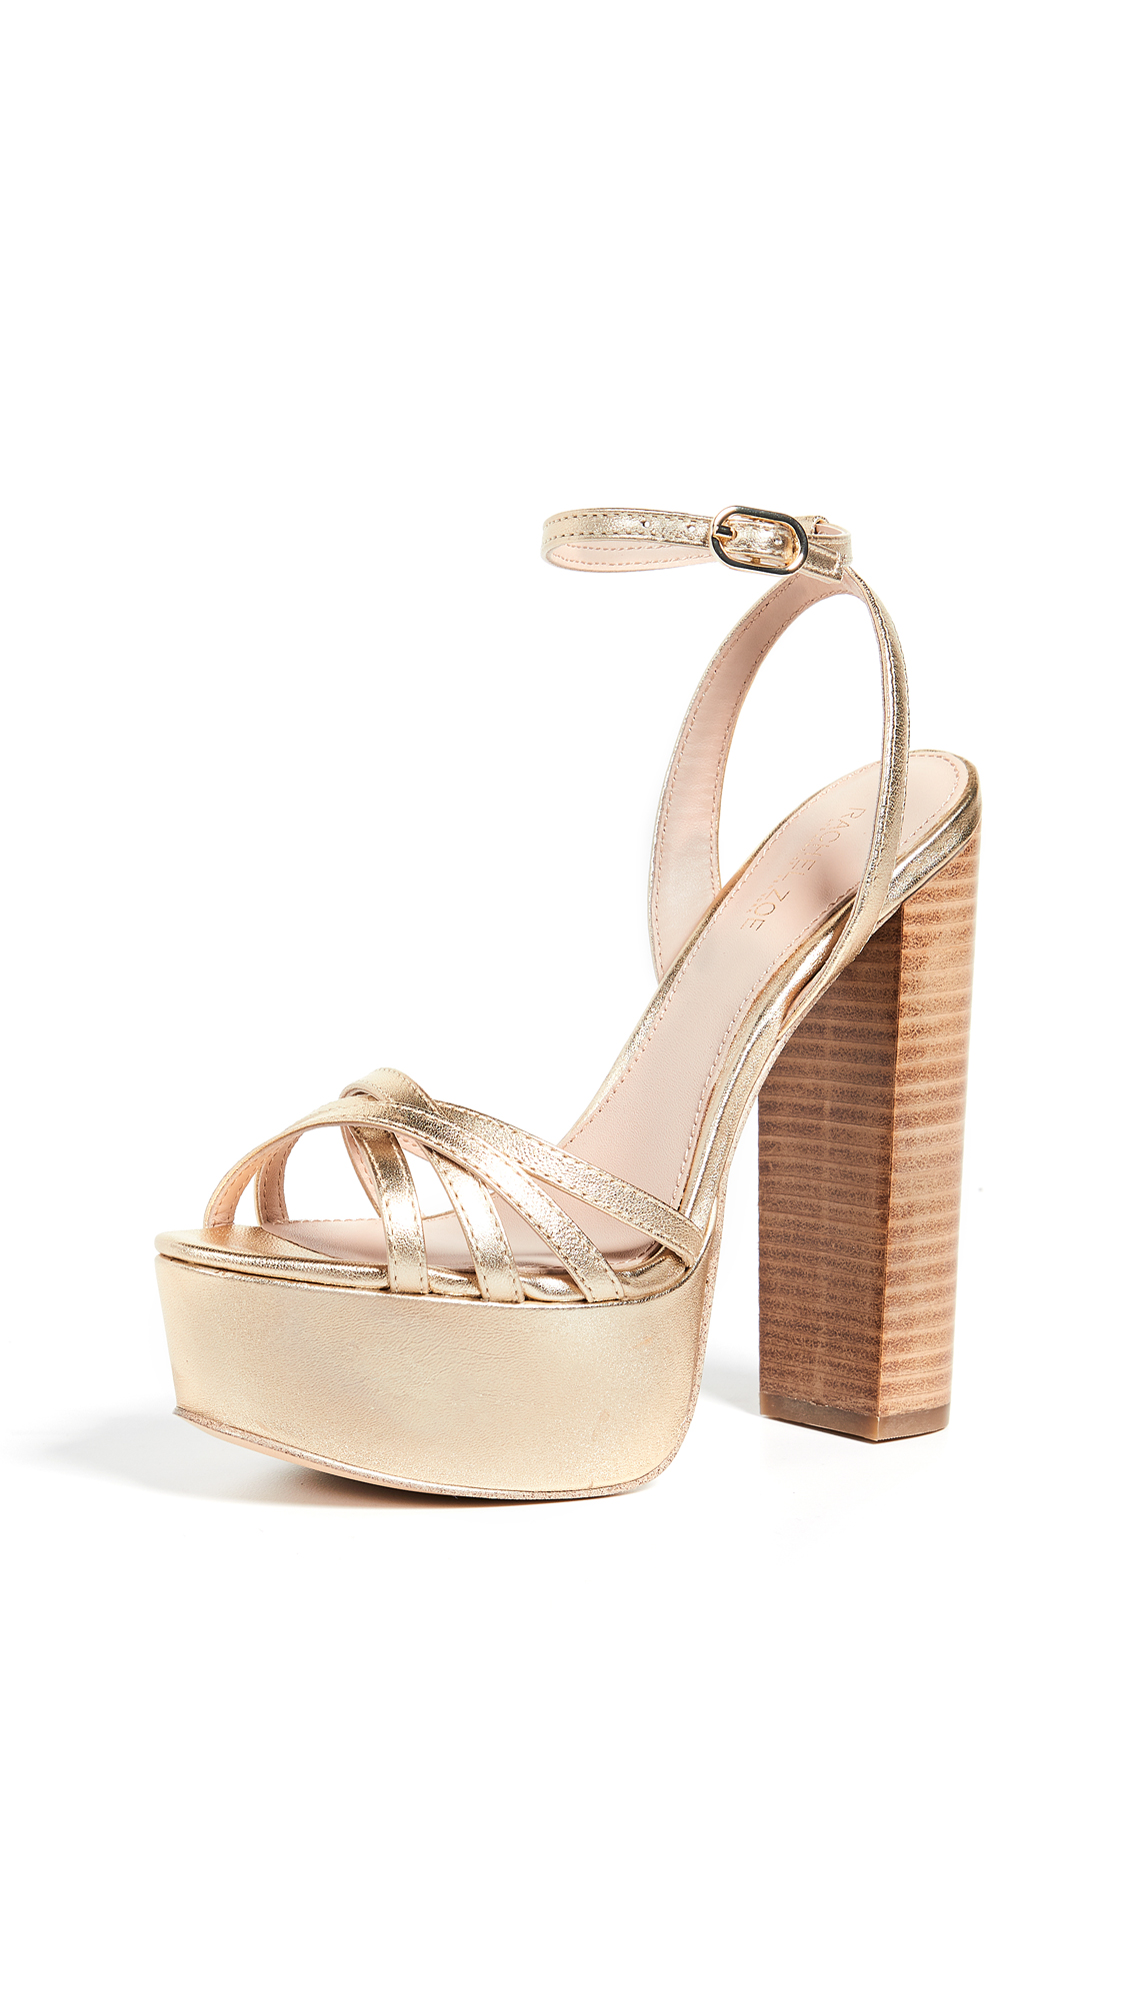 Rachel Zoe Charlotte Platform Sandals - Light Gold